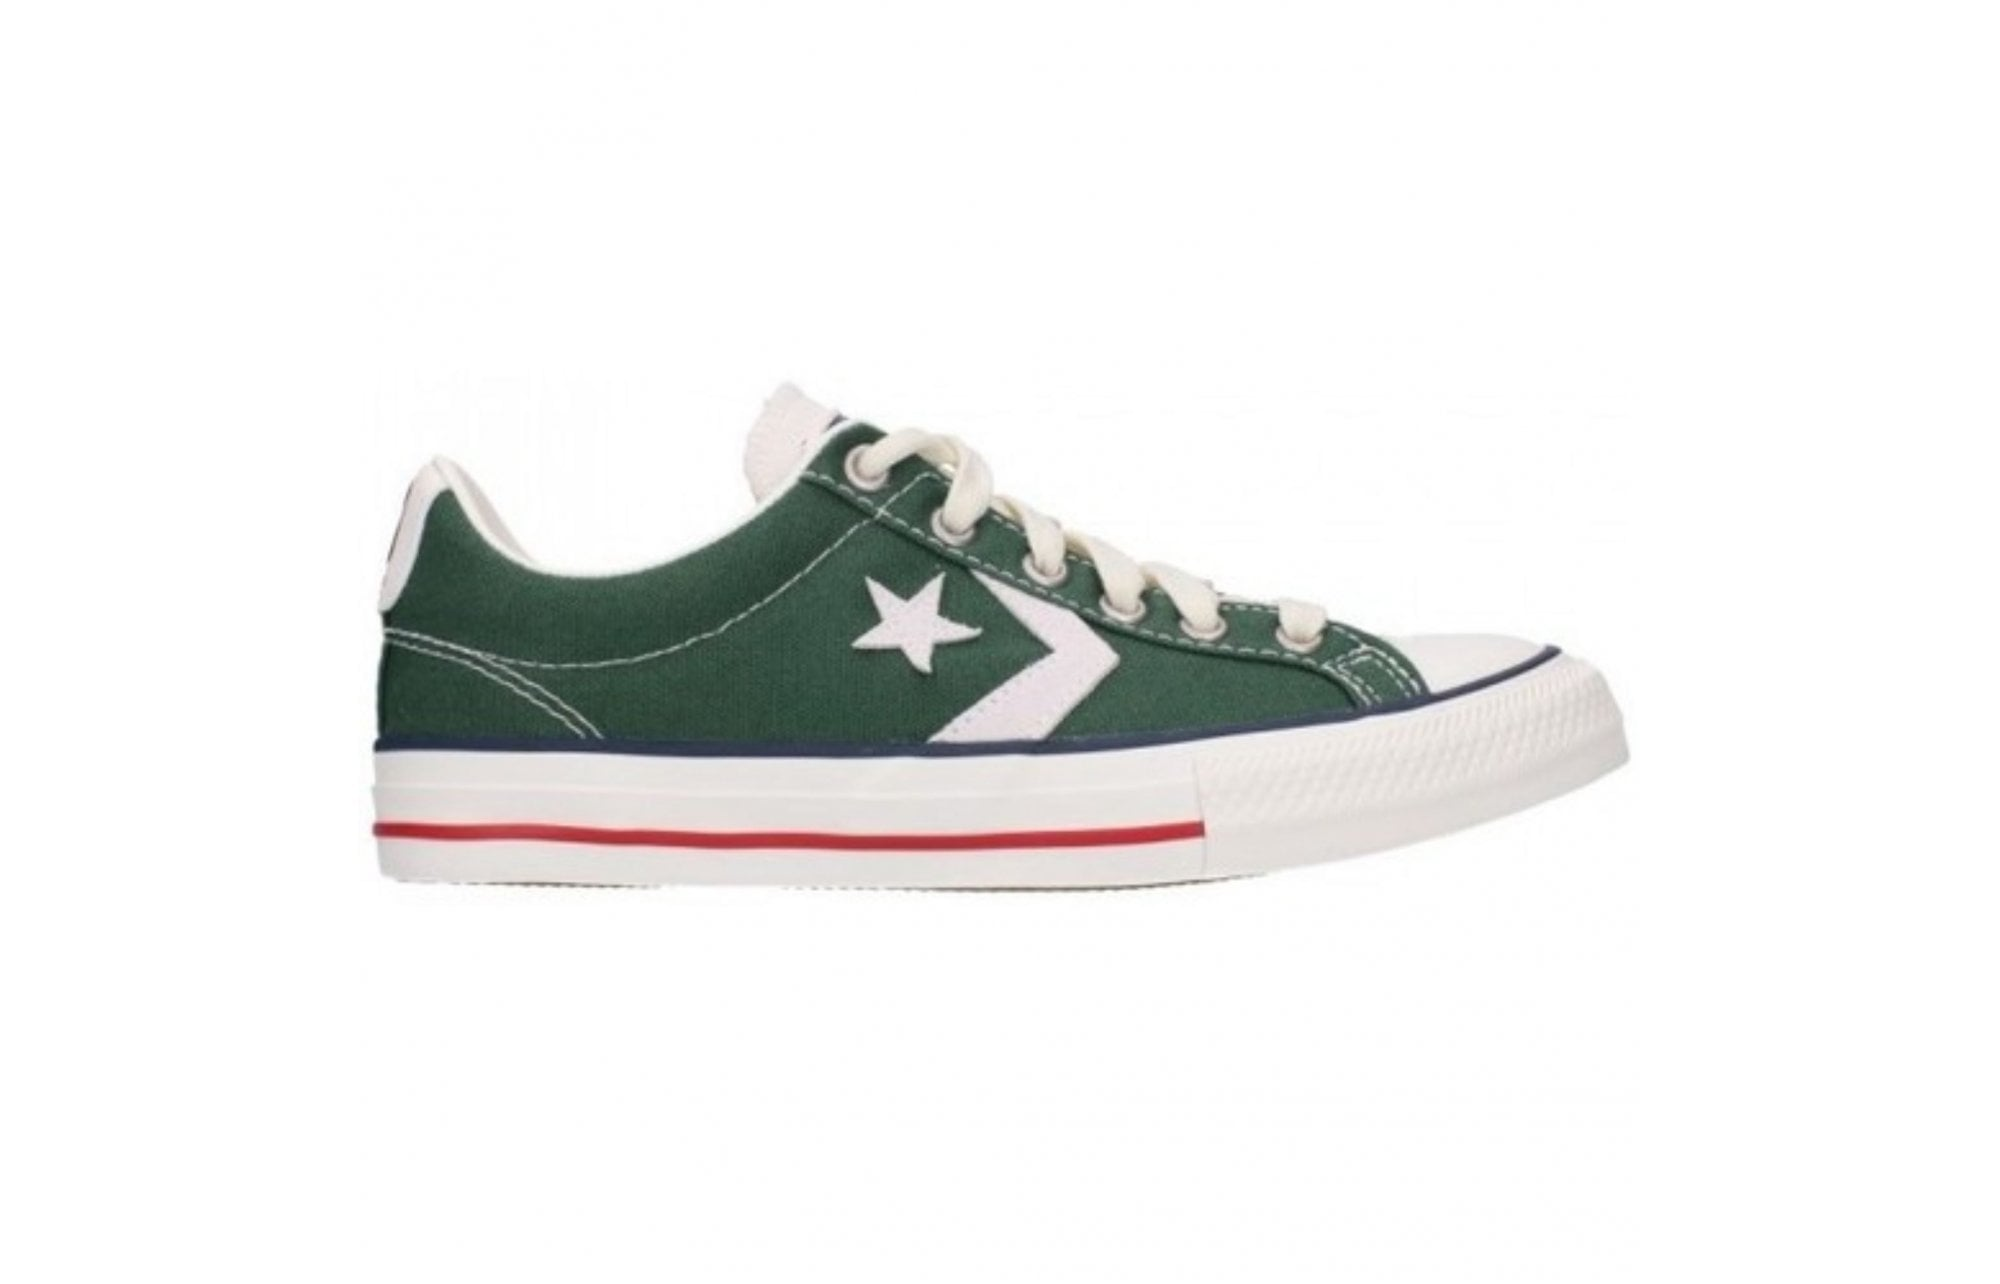 usuario Inseguro discordia  CONVERSE Converse Star Player Youth Trainers - Green - Children from  Johnsons Shoes UK